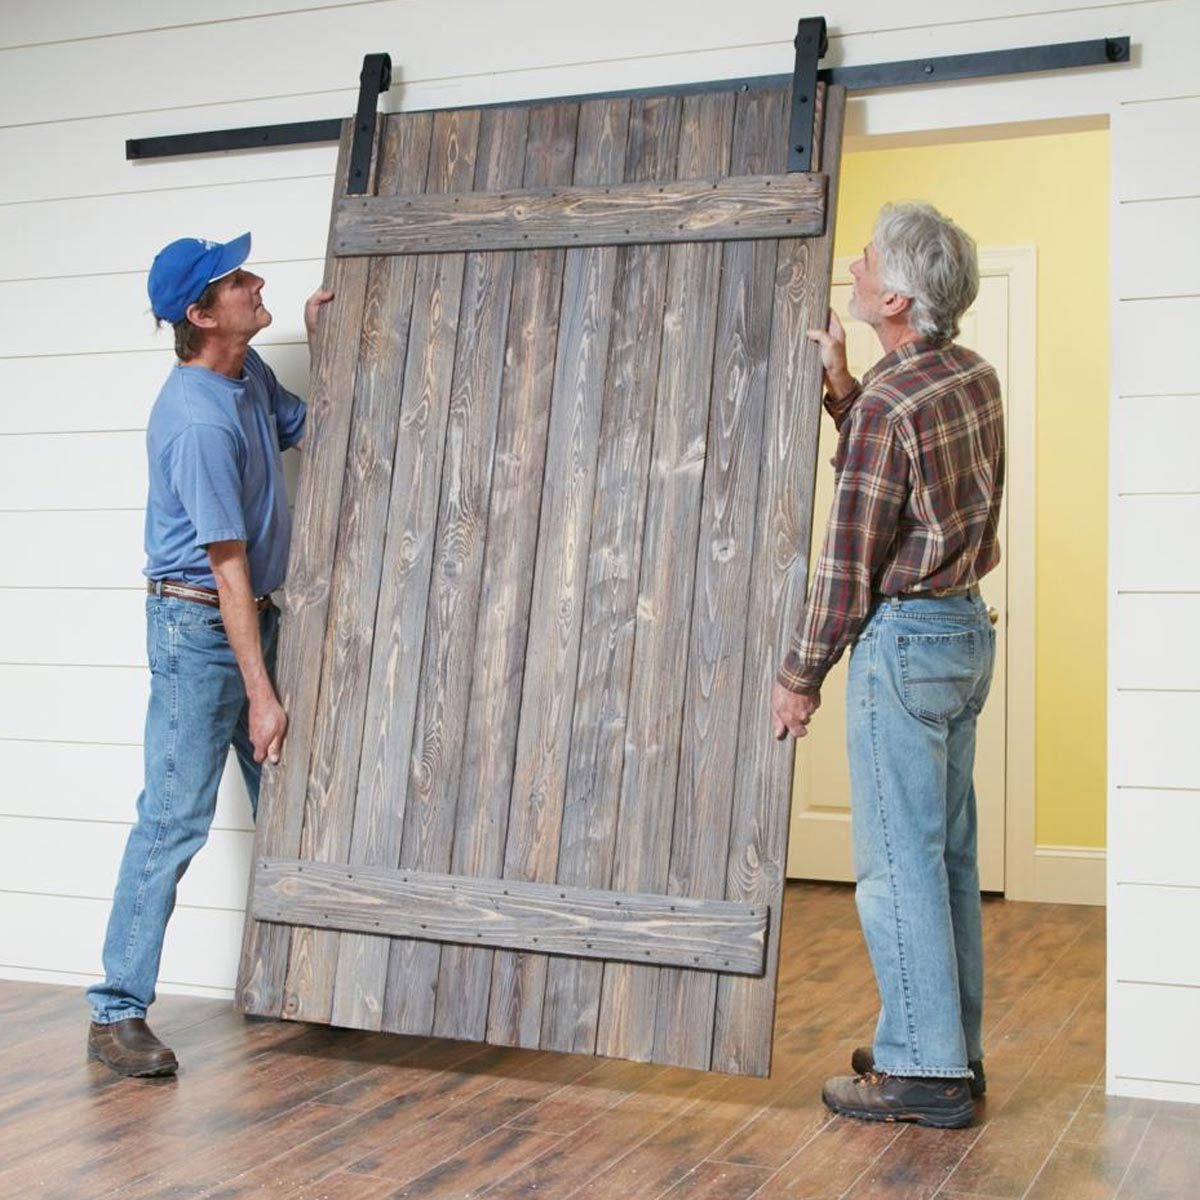 FH17JUN_579_50_046_preview_v2 hang the barn door